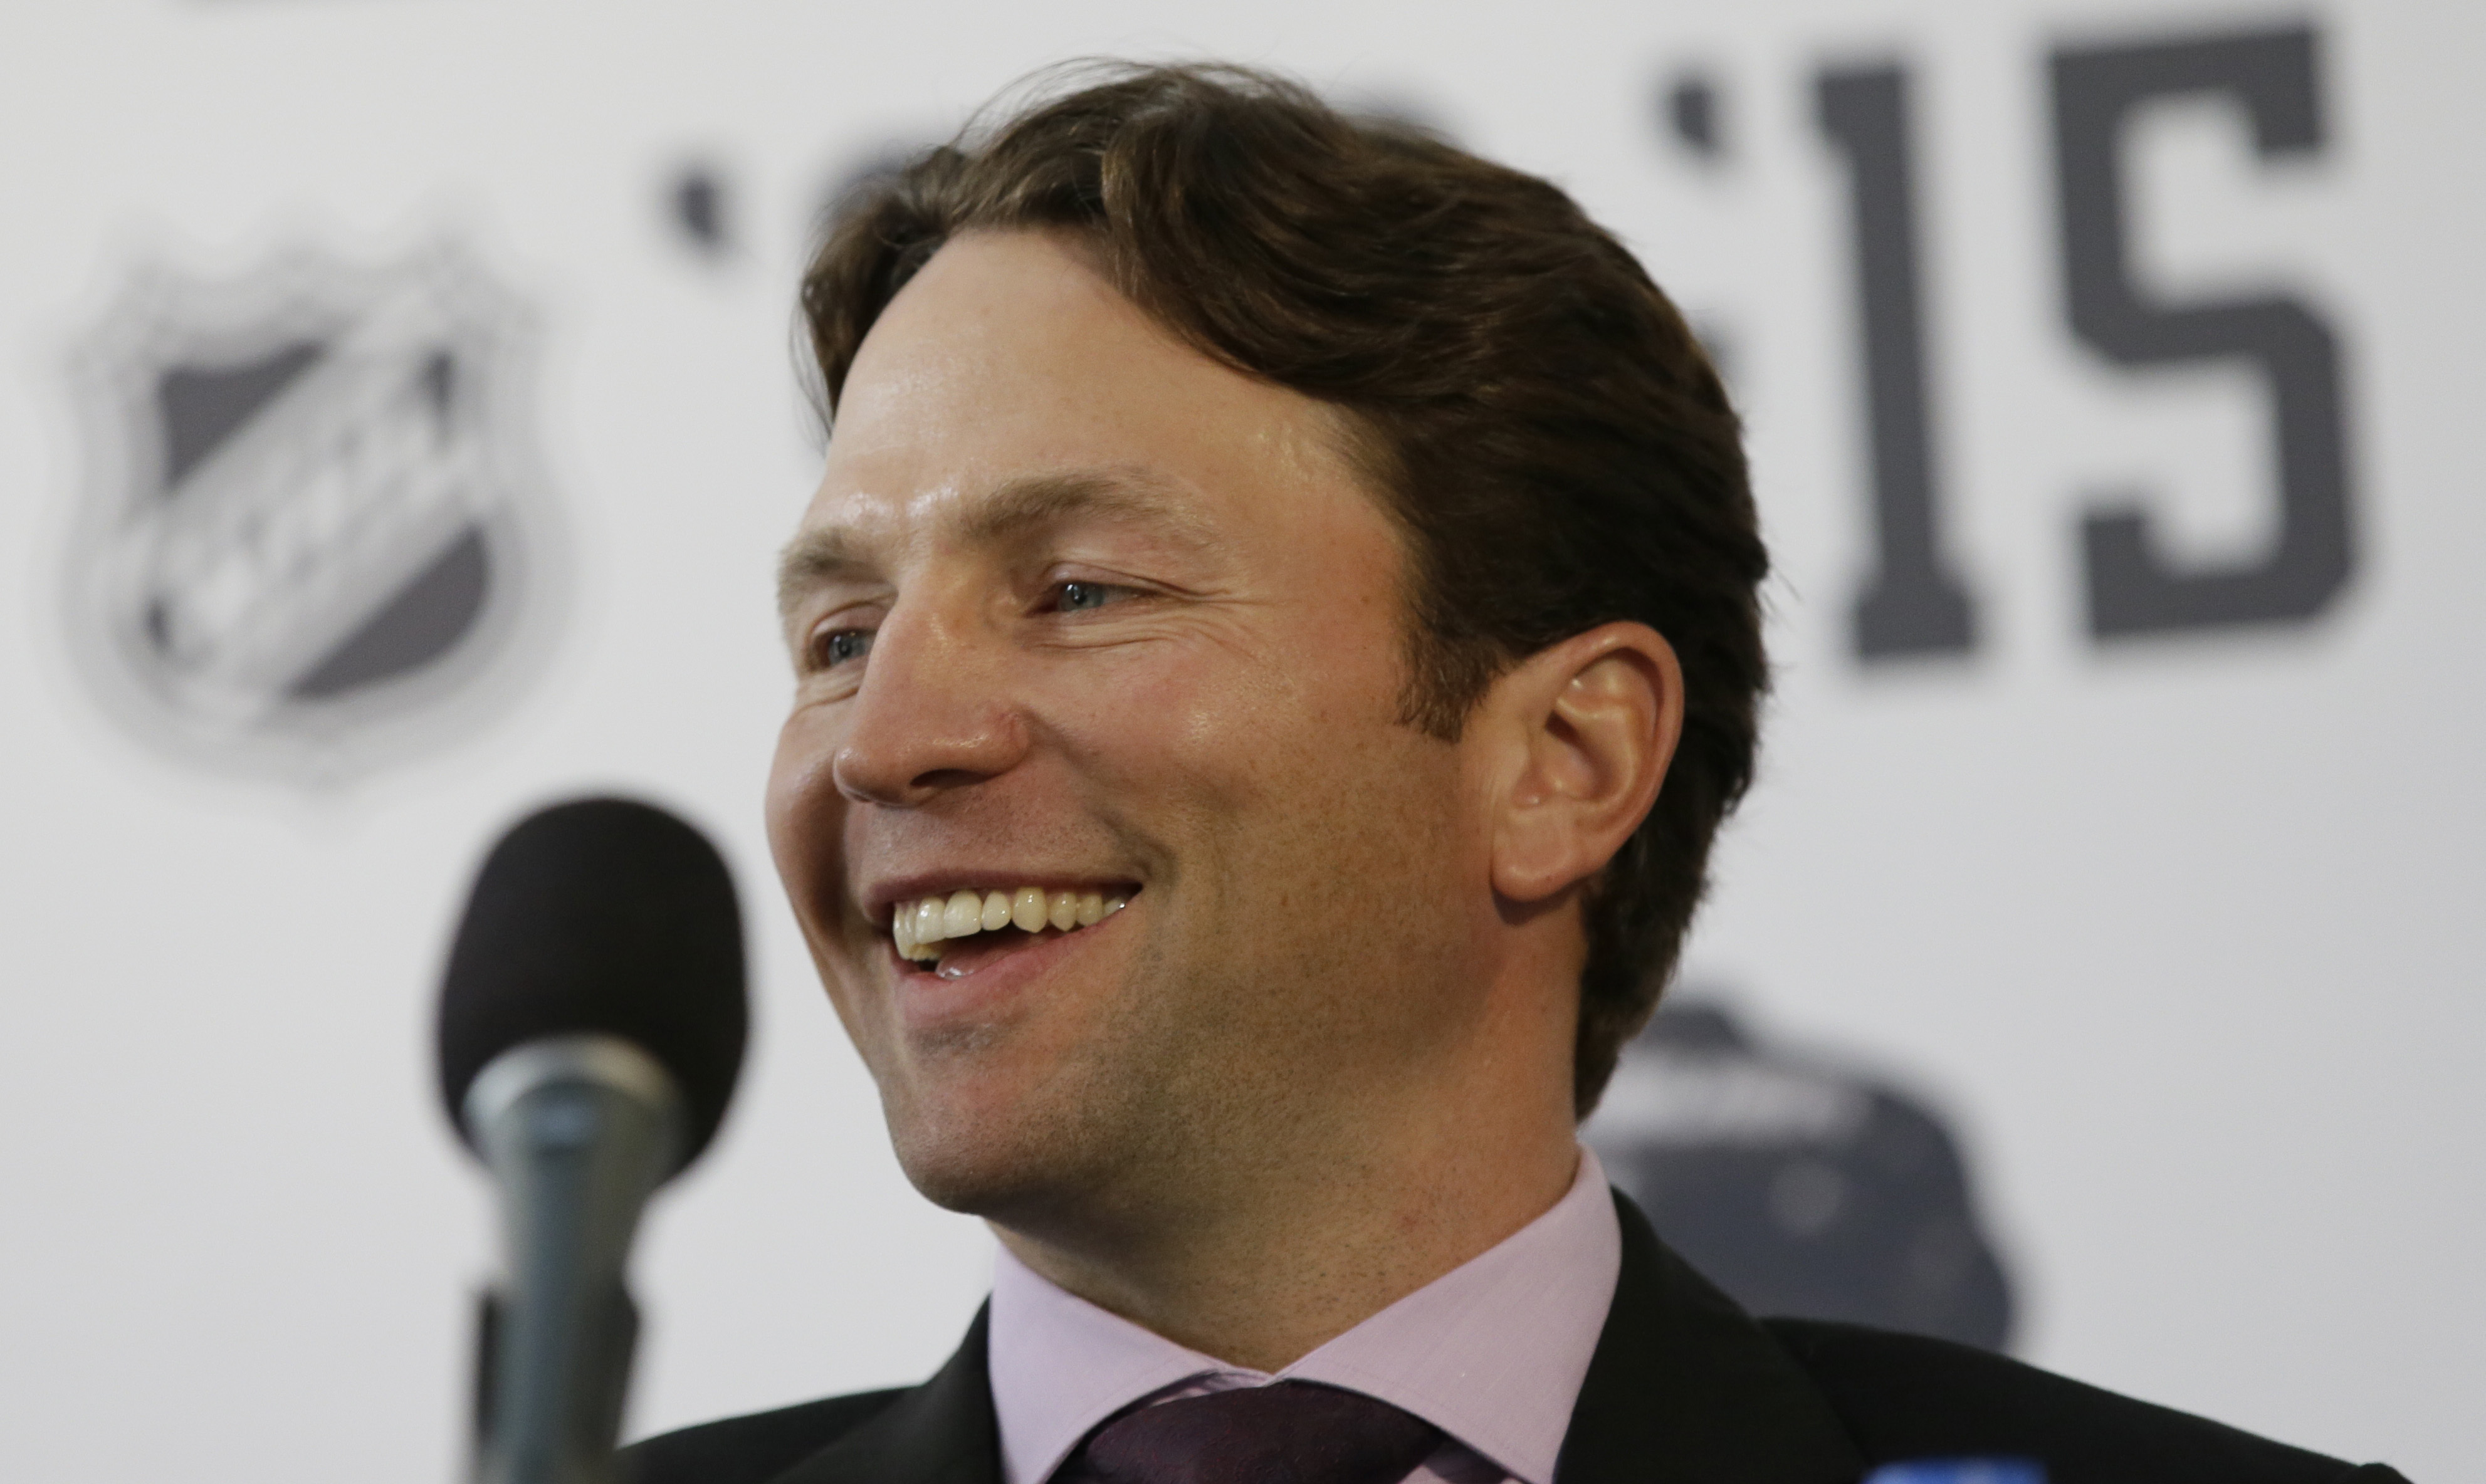 Dallas Stars Brendan Morrow smiles during his retirement news conference Thursday, March 17, 2016, in Dallas. Morrow is retiring after a 15-year career that started and ended with trips to the Stanley Cup finals, but without a title. He'll retire with the